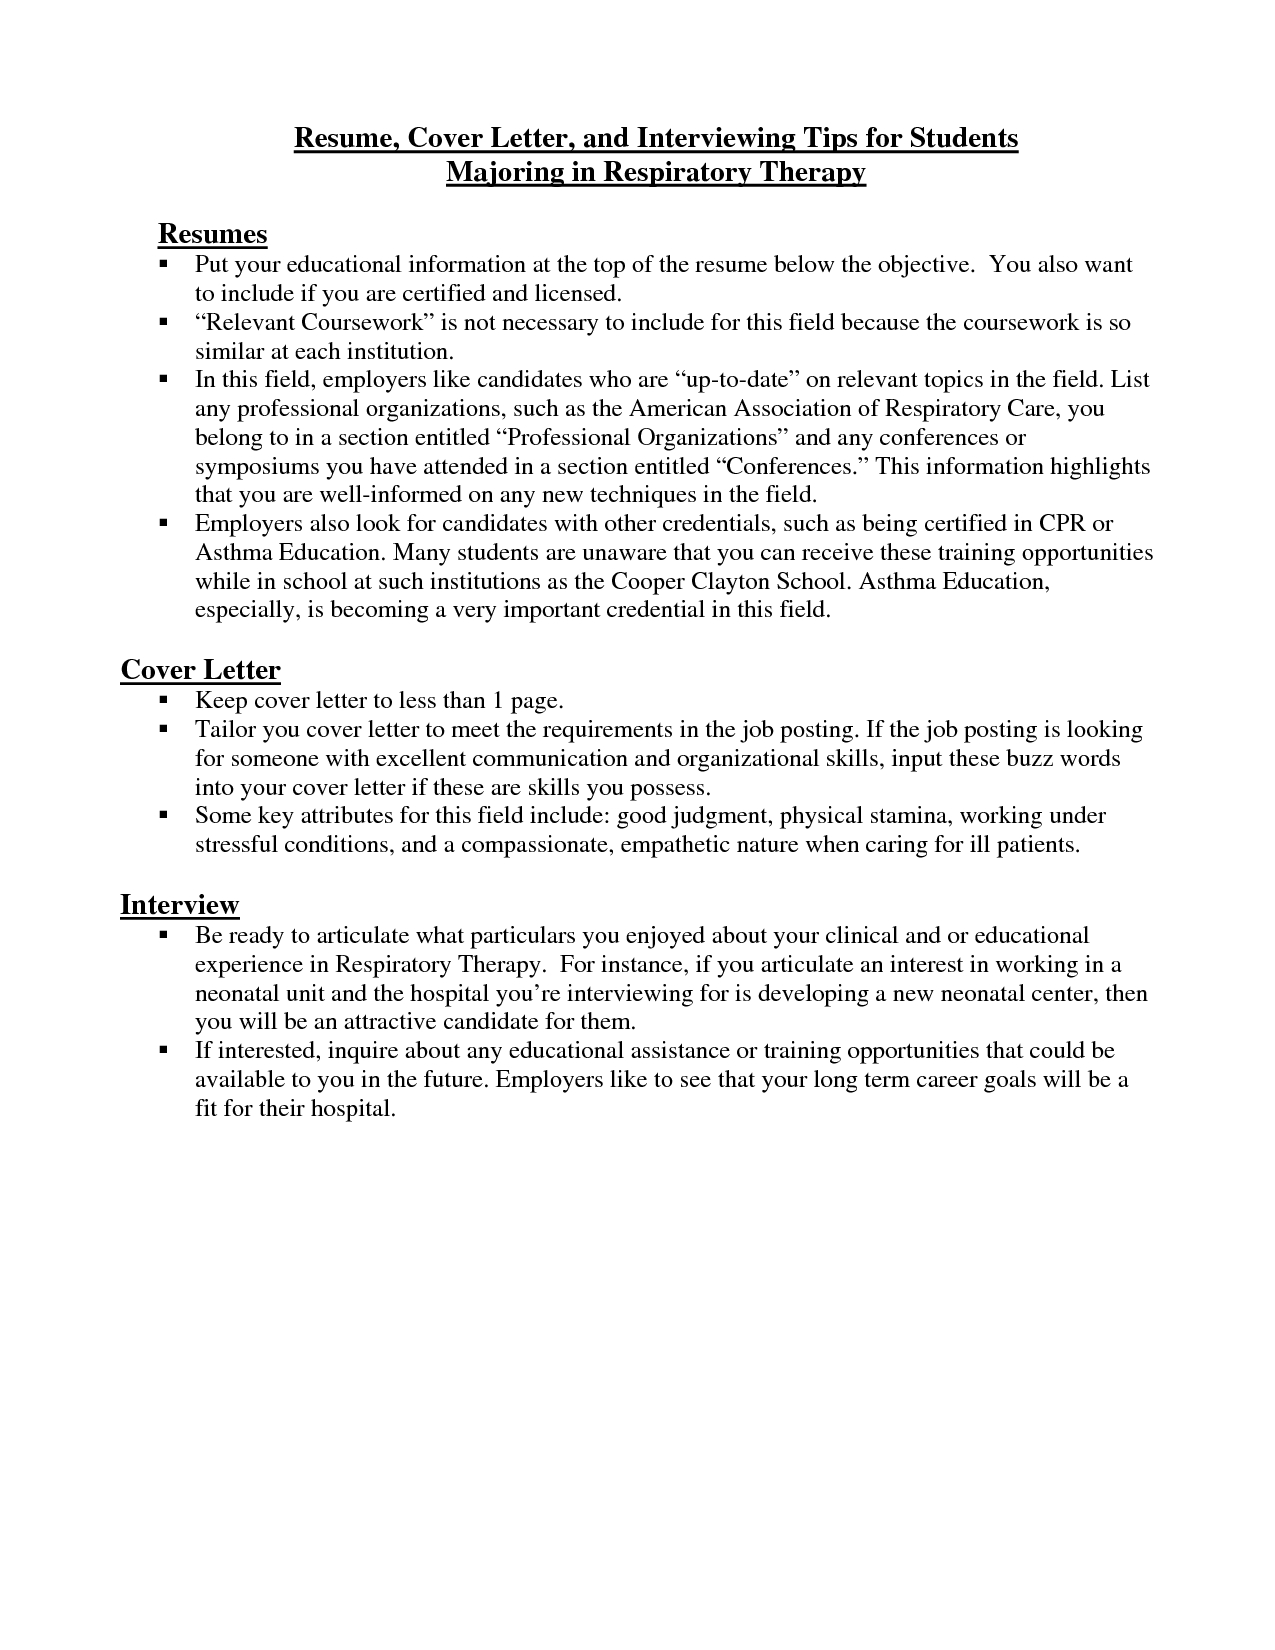 respiratory therapy cover letter template example-respiratory therapist cover letter 4-d